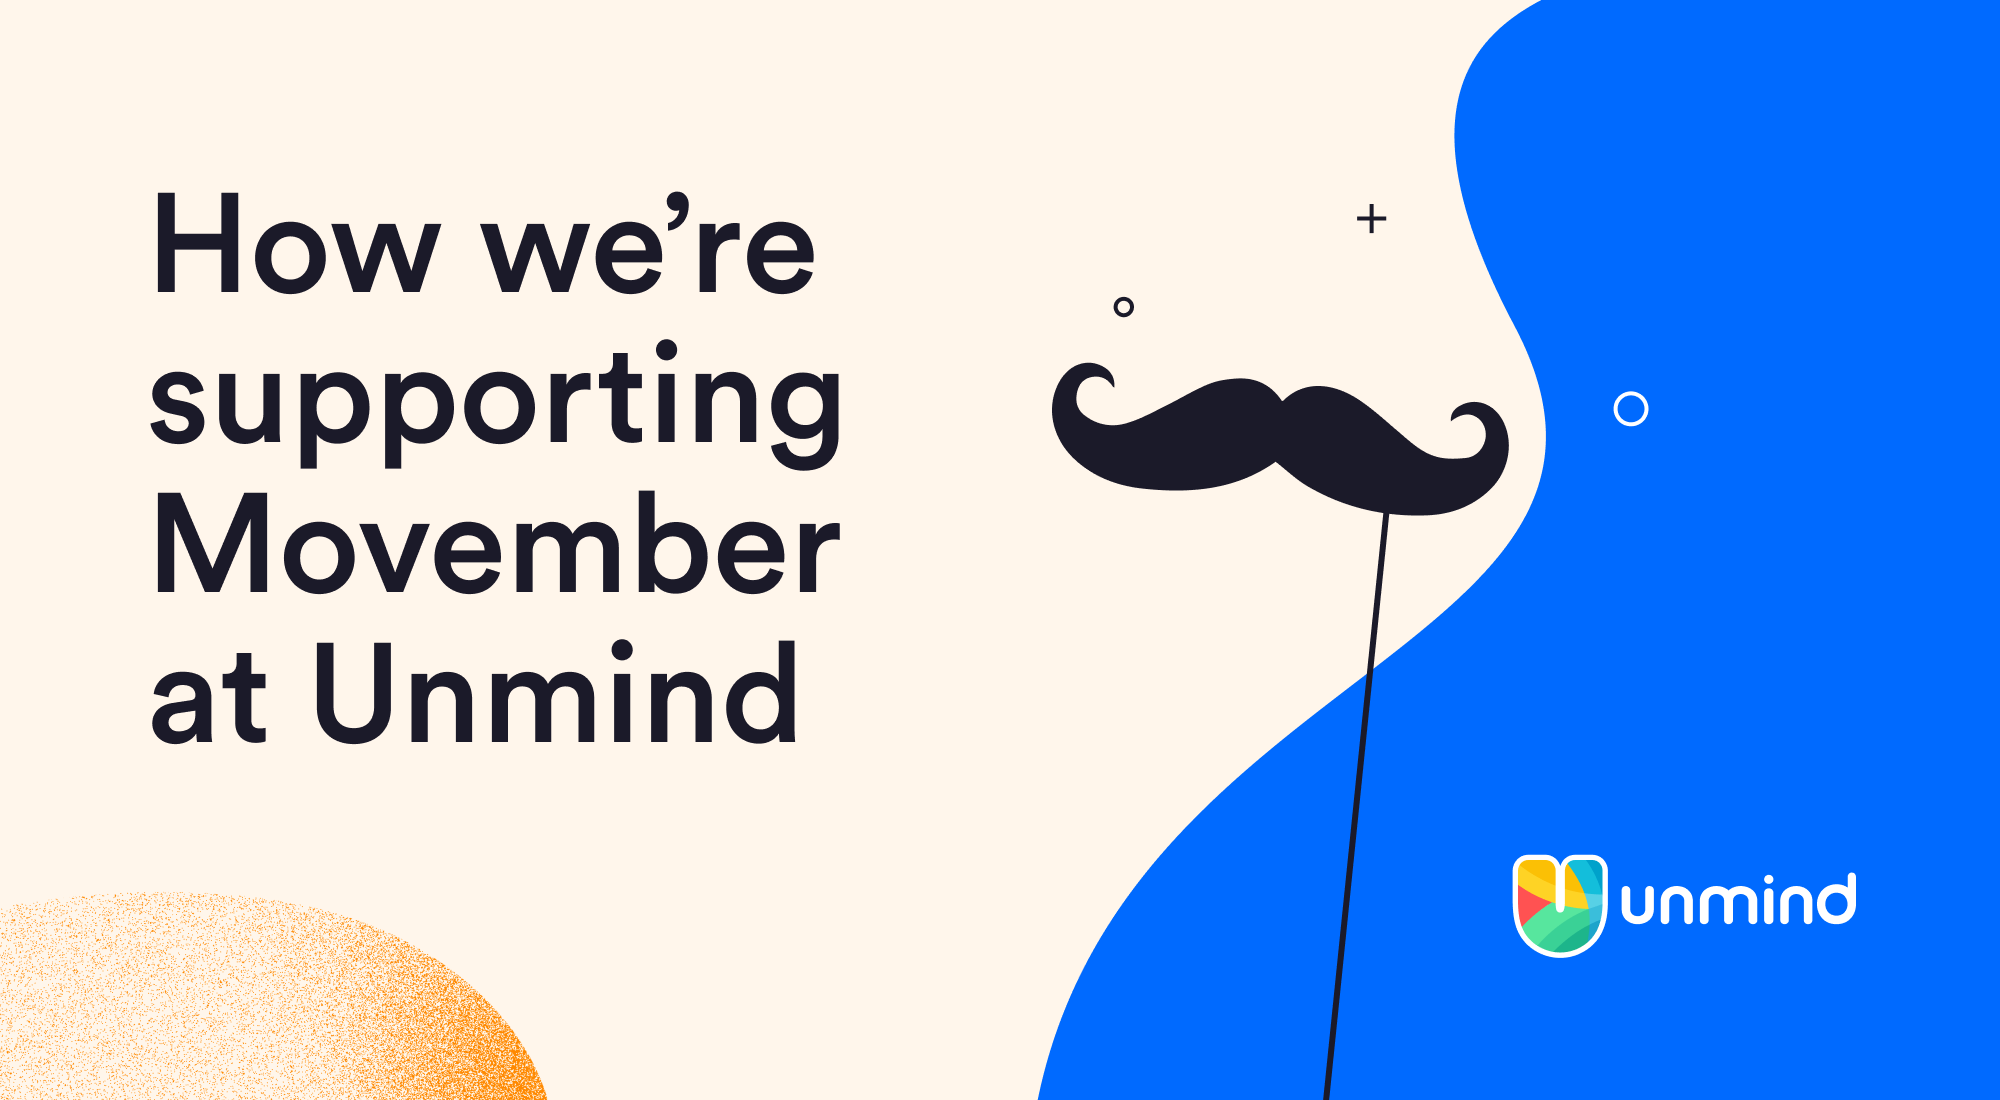 An image depicting a moustache with the text 'How we're supporting Movember at Unmind'